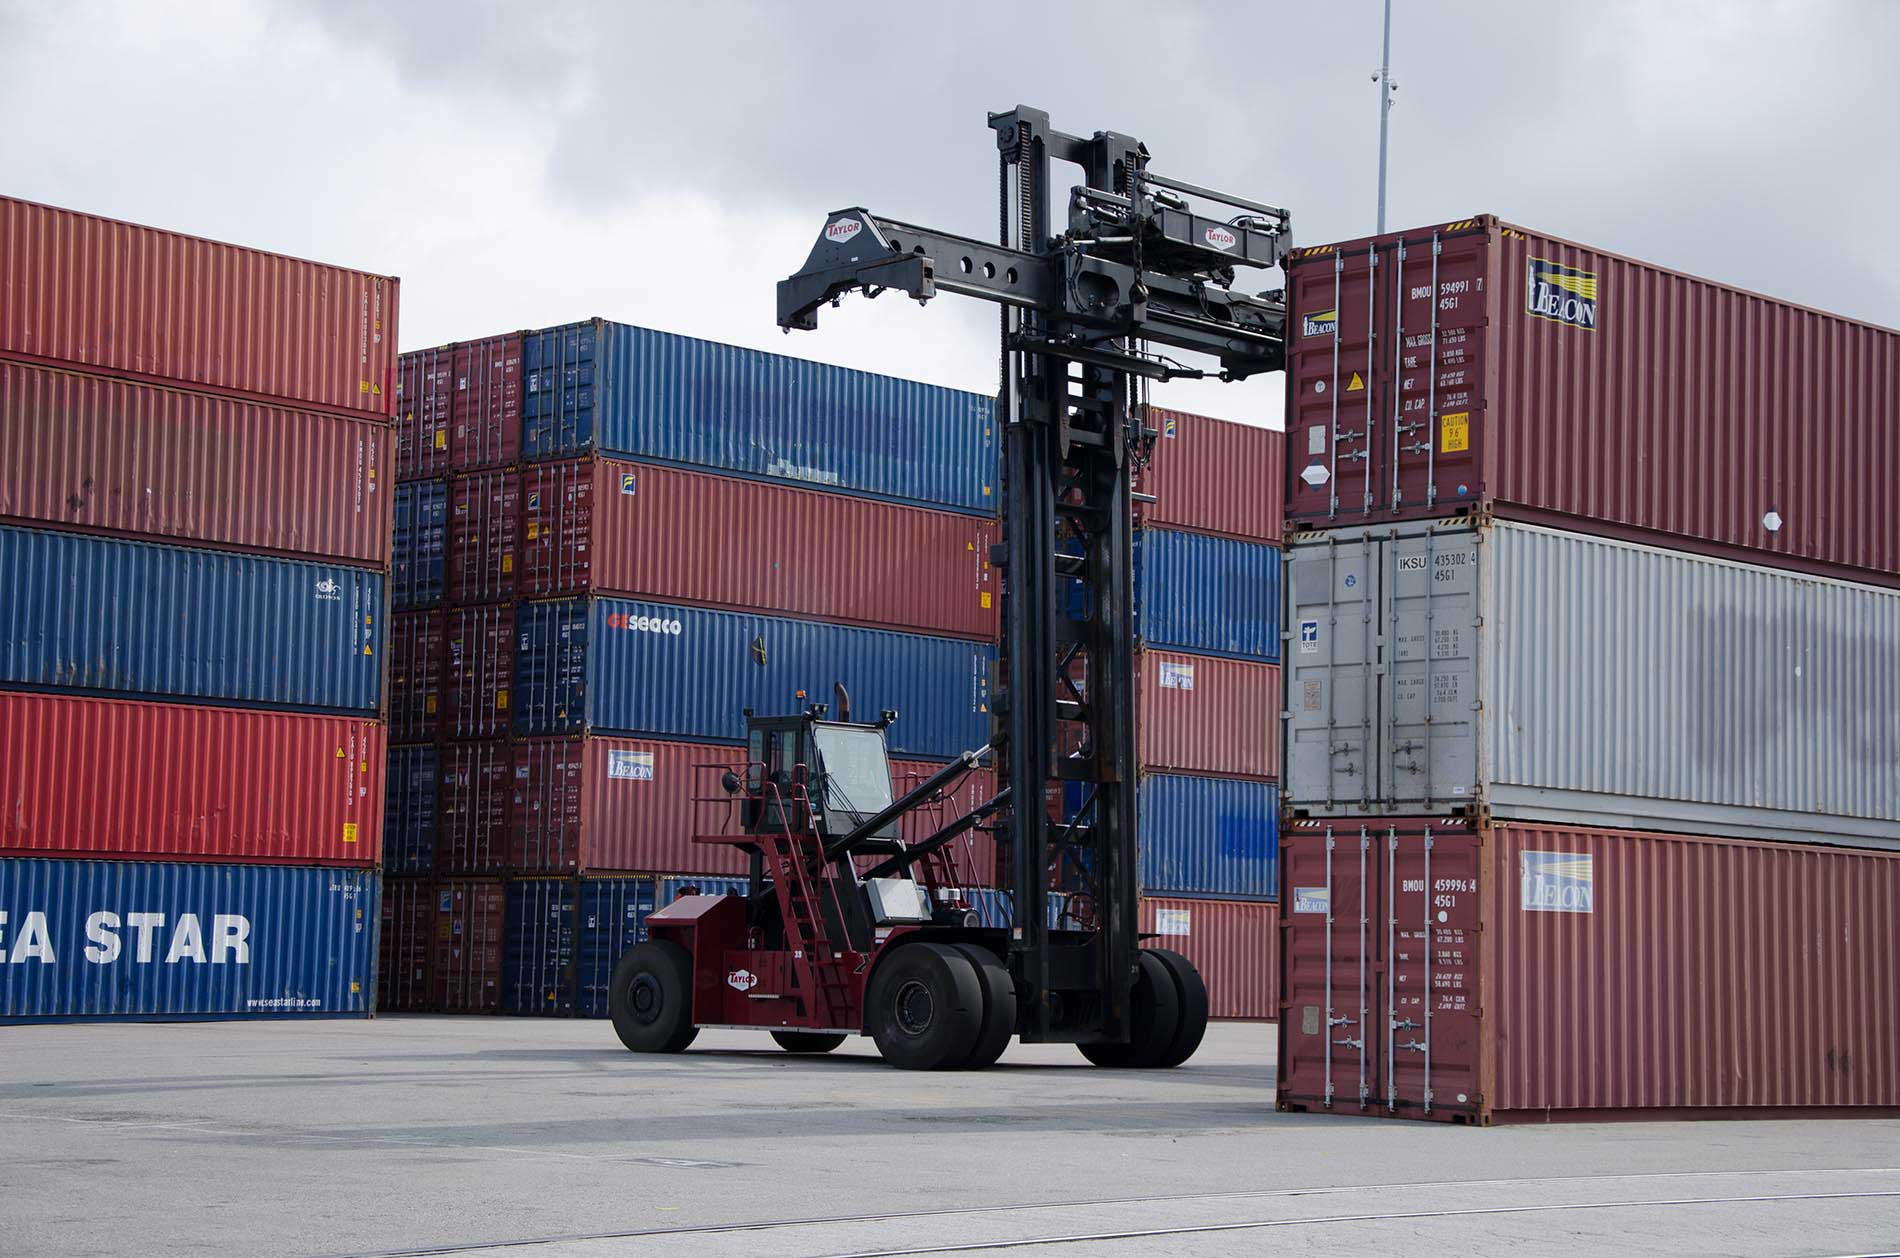 Crane and cargo containers